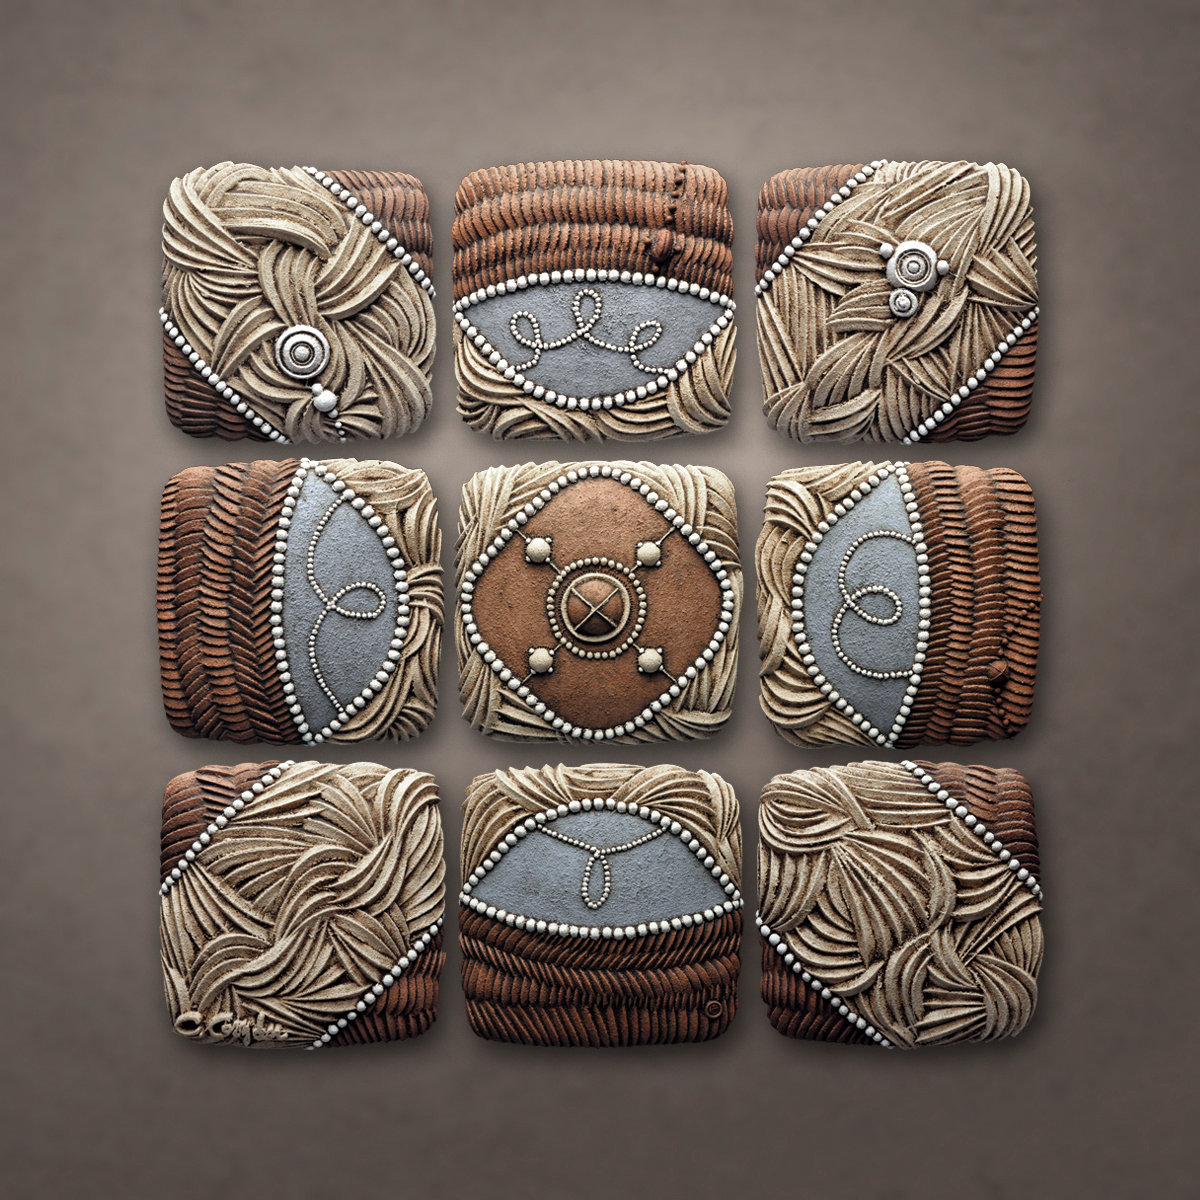 Mountain Pattern By Christopher Gryder Ceramic Wall Art